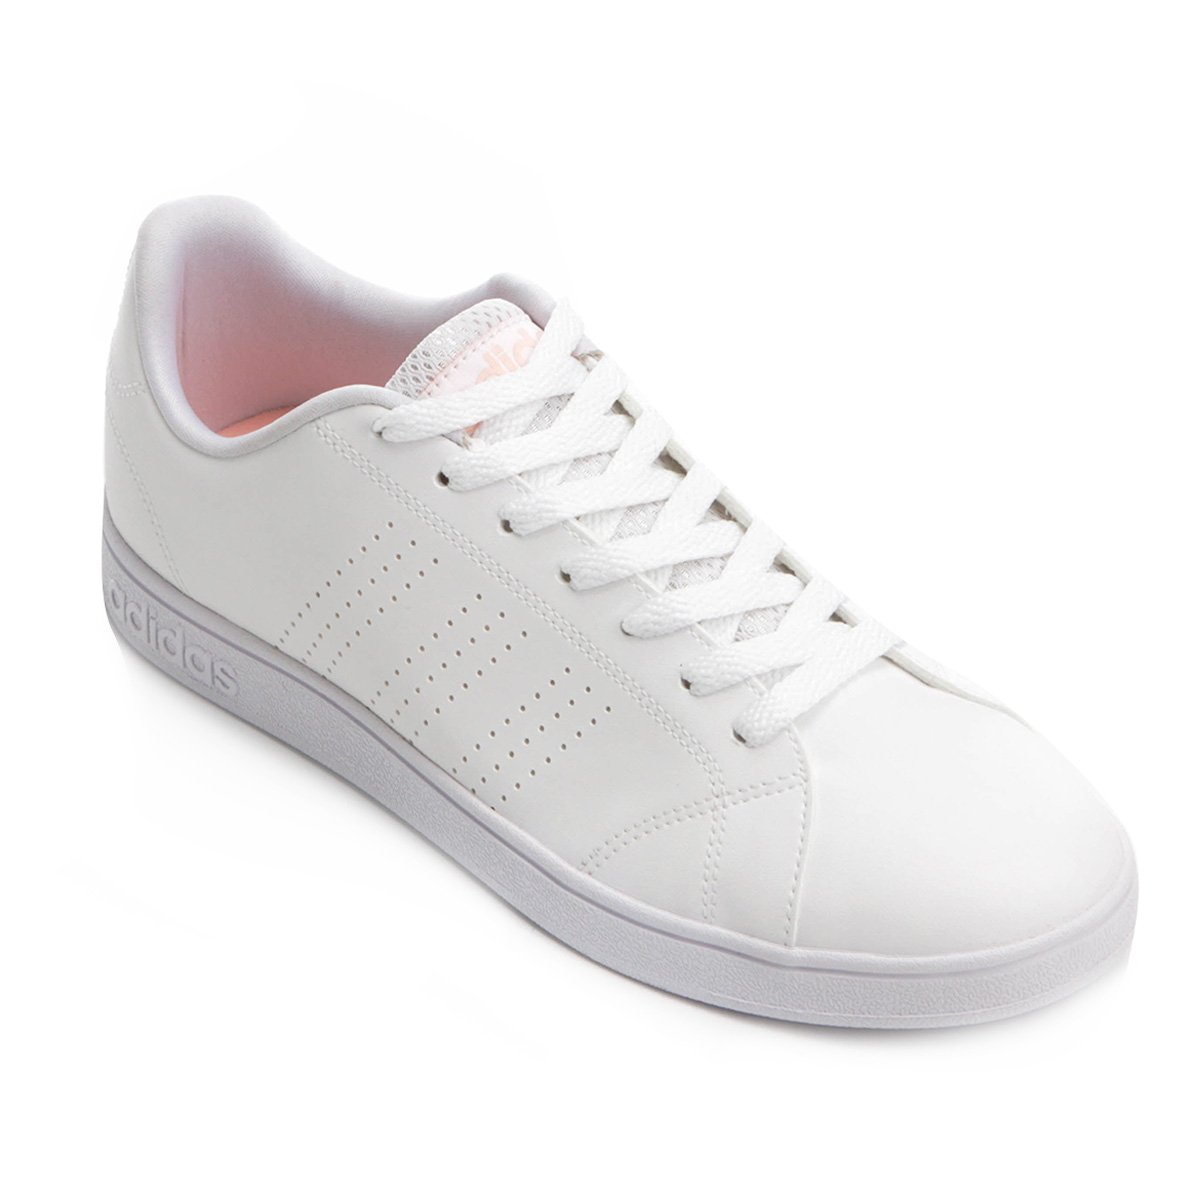 Tênis Adidas Vs Advantage Clean Feminino 7233b0b987633